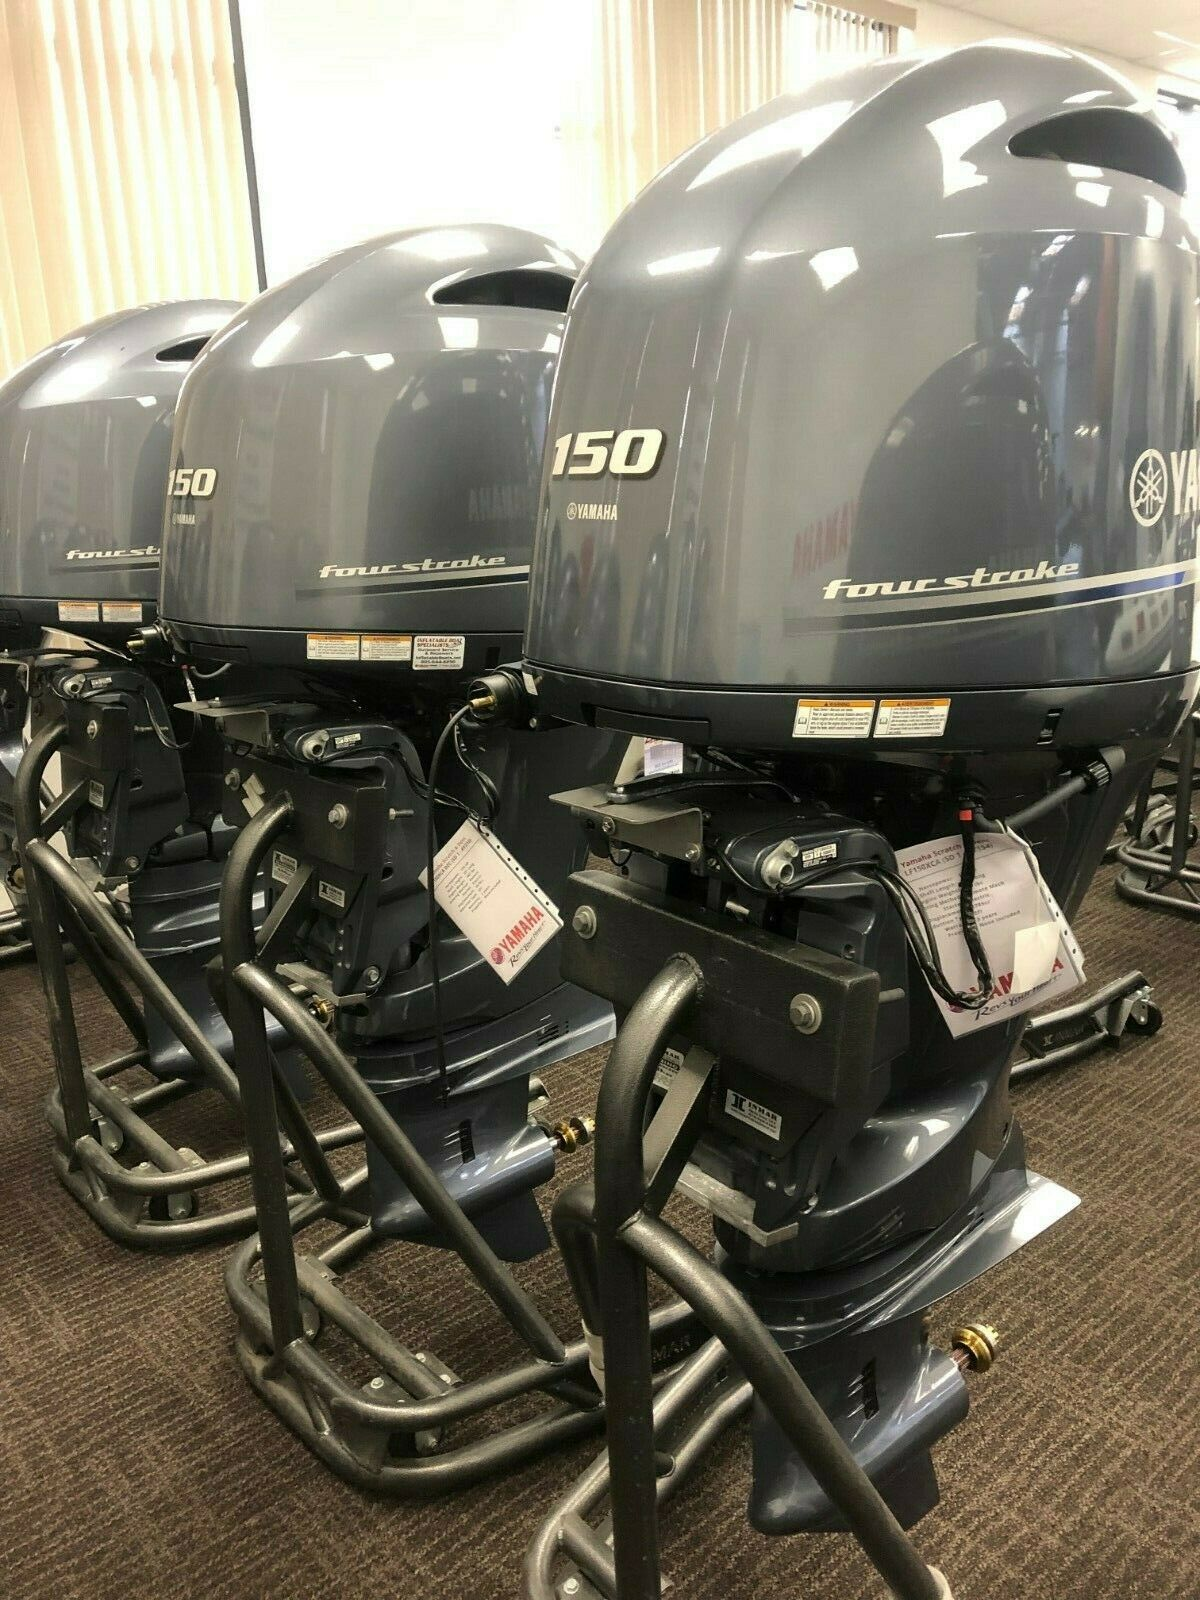 PennySaver | For Sale quality outboard engines (4 stroke and